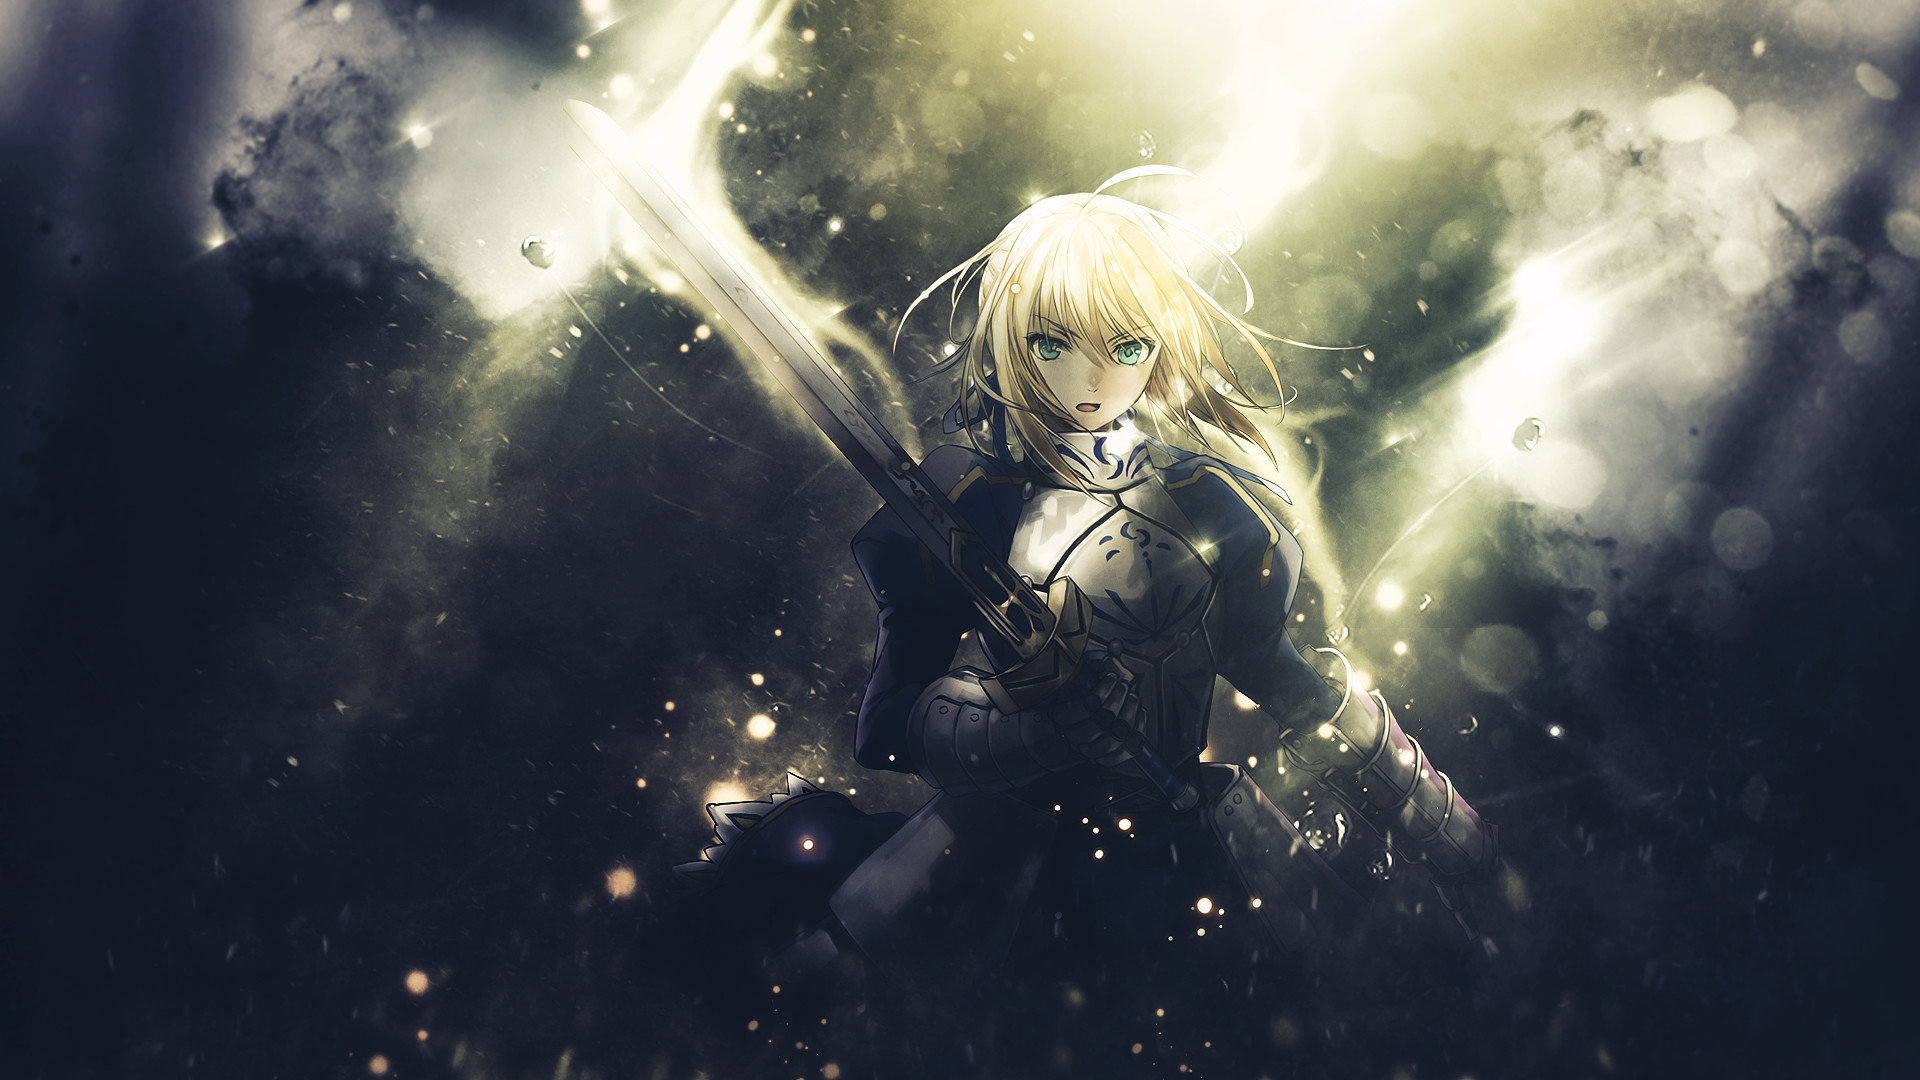 Download Full Hd 1920x1080 Fate Zero Computer Background ID87450 For Free